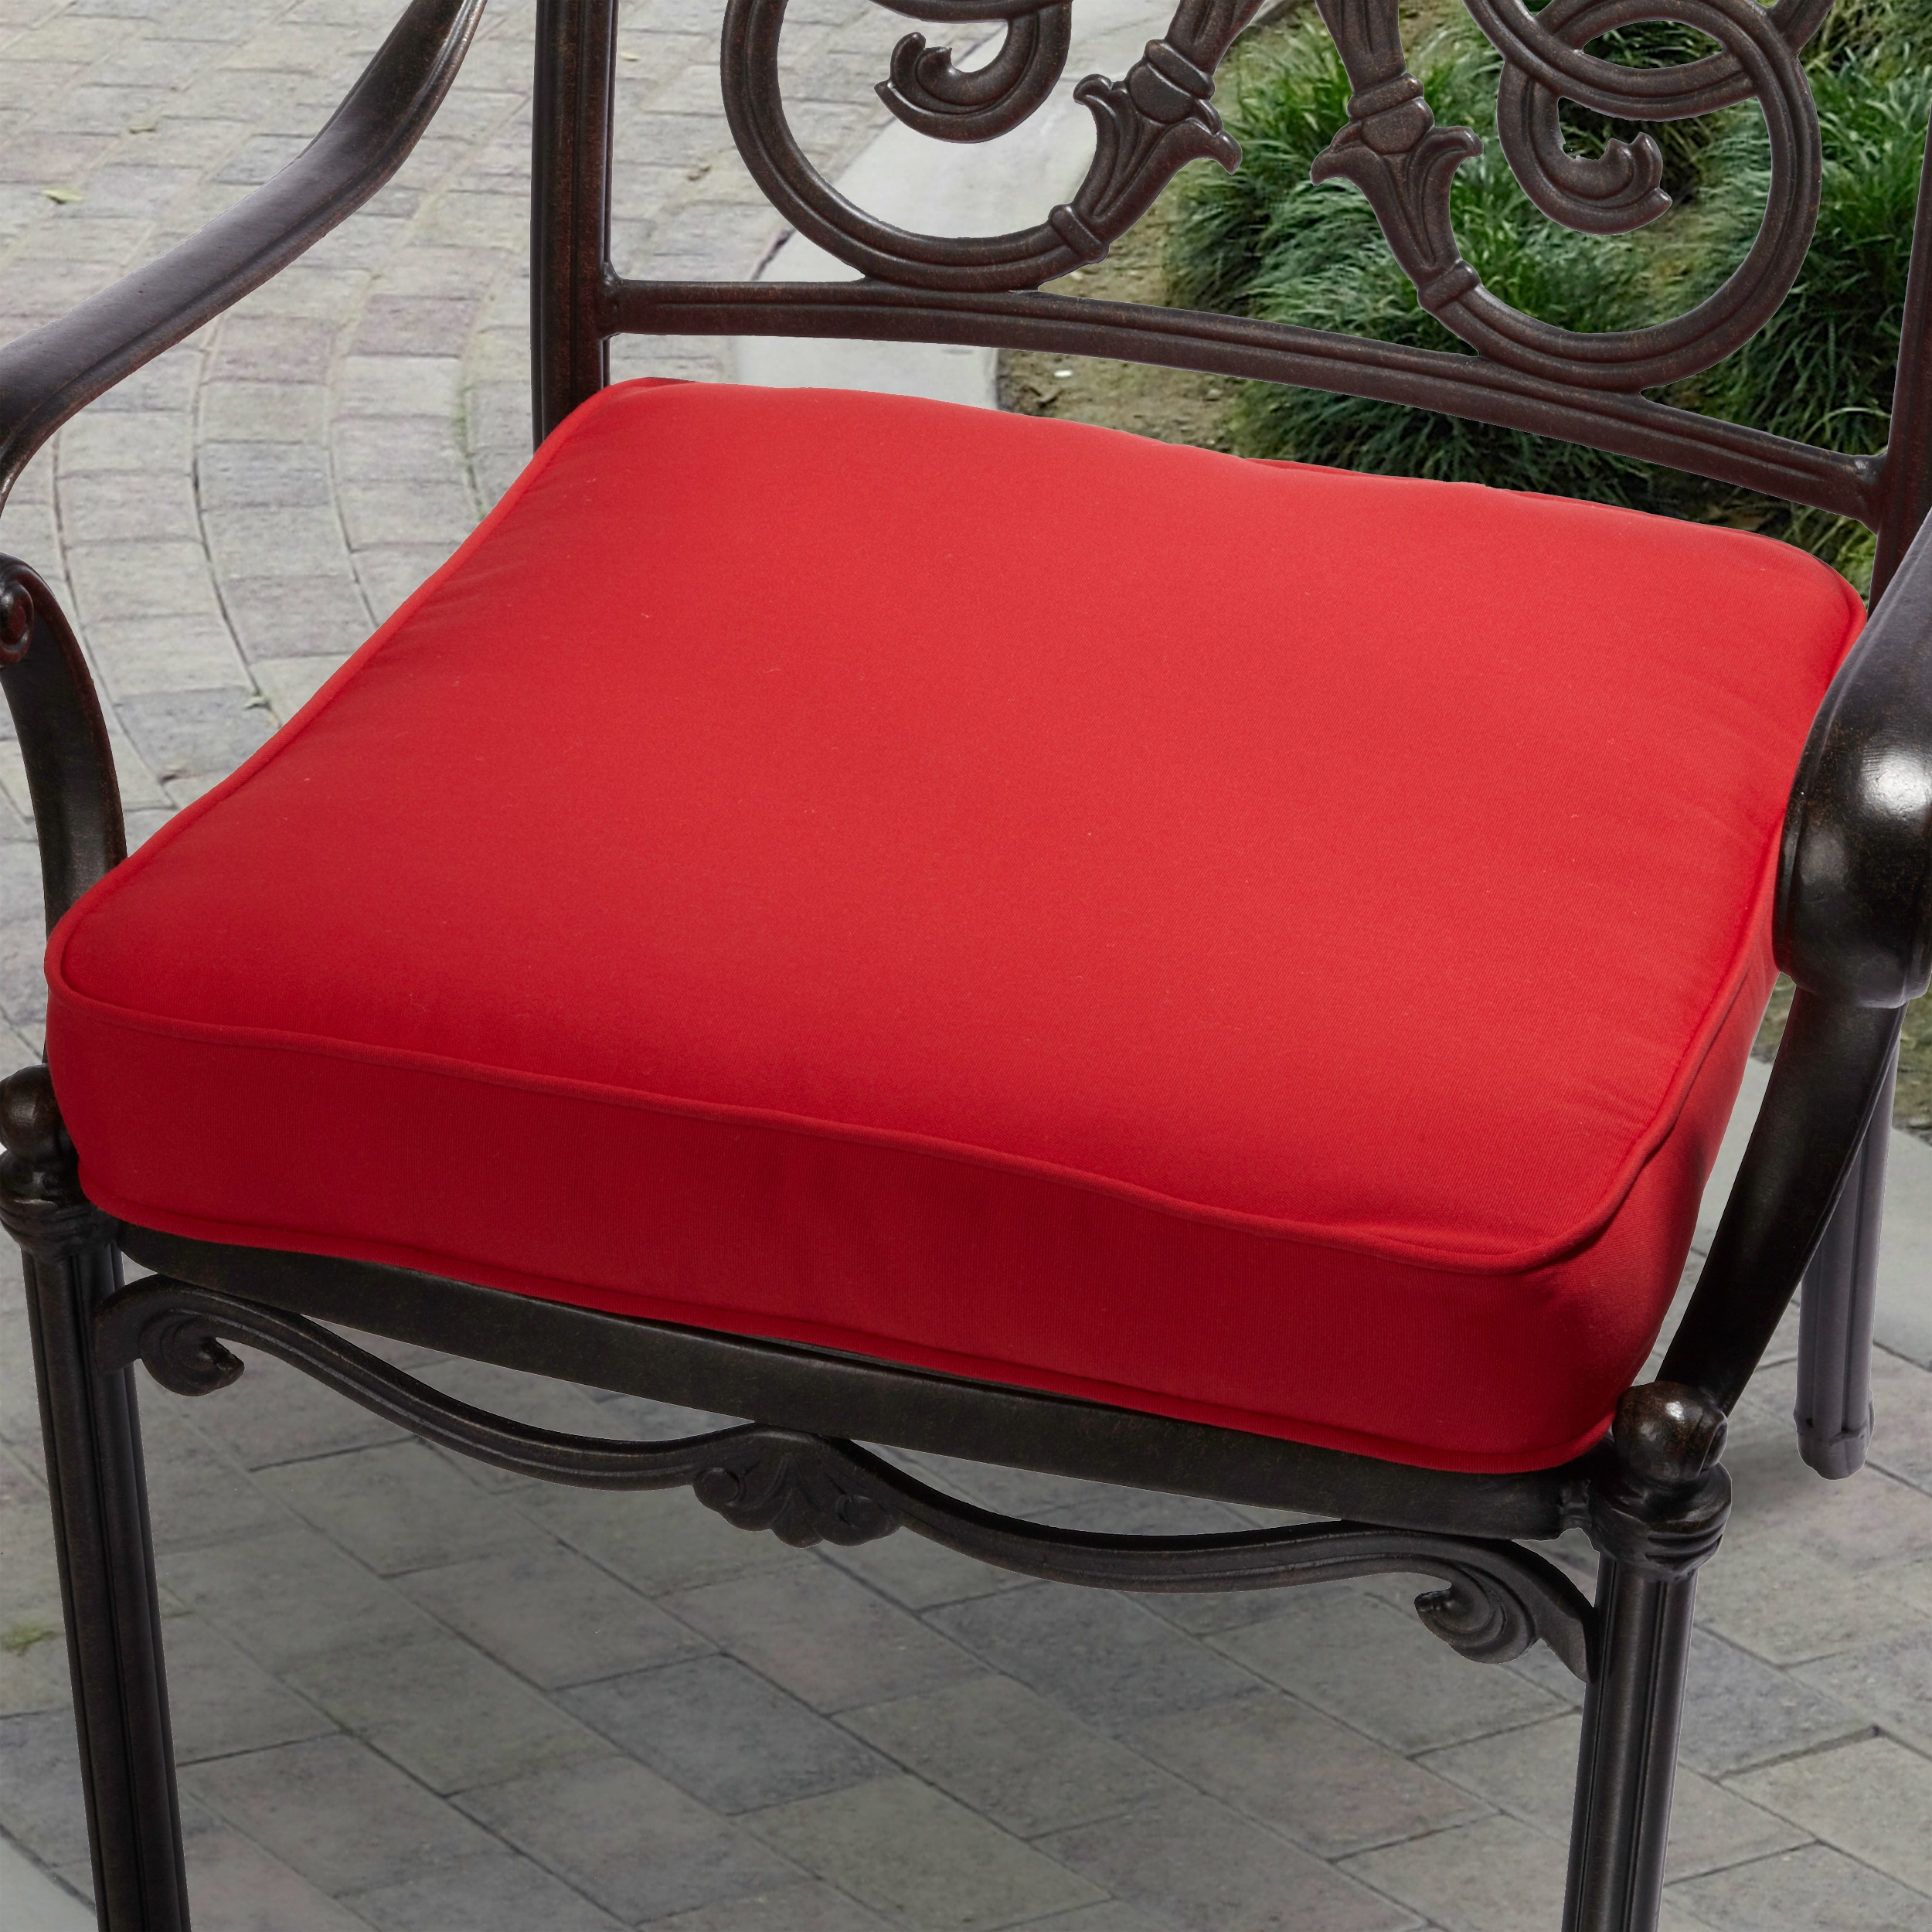 Overstock.com Indoor/ Outdoor 20-inch Solid Traditional Chair Cushion with Sunbrella Fabric